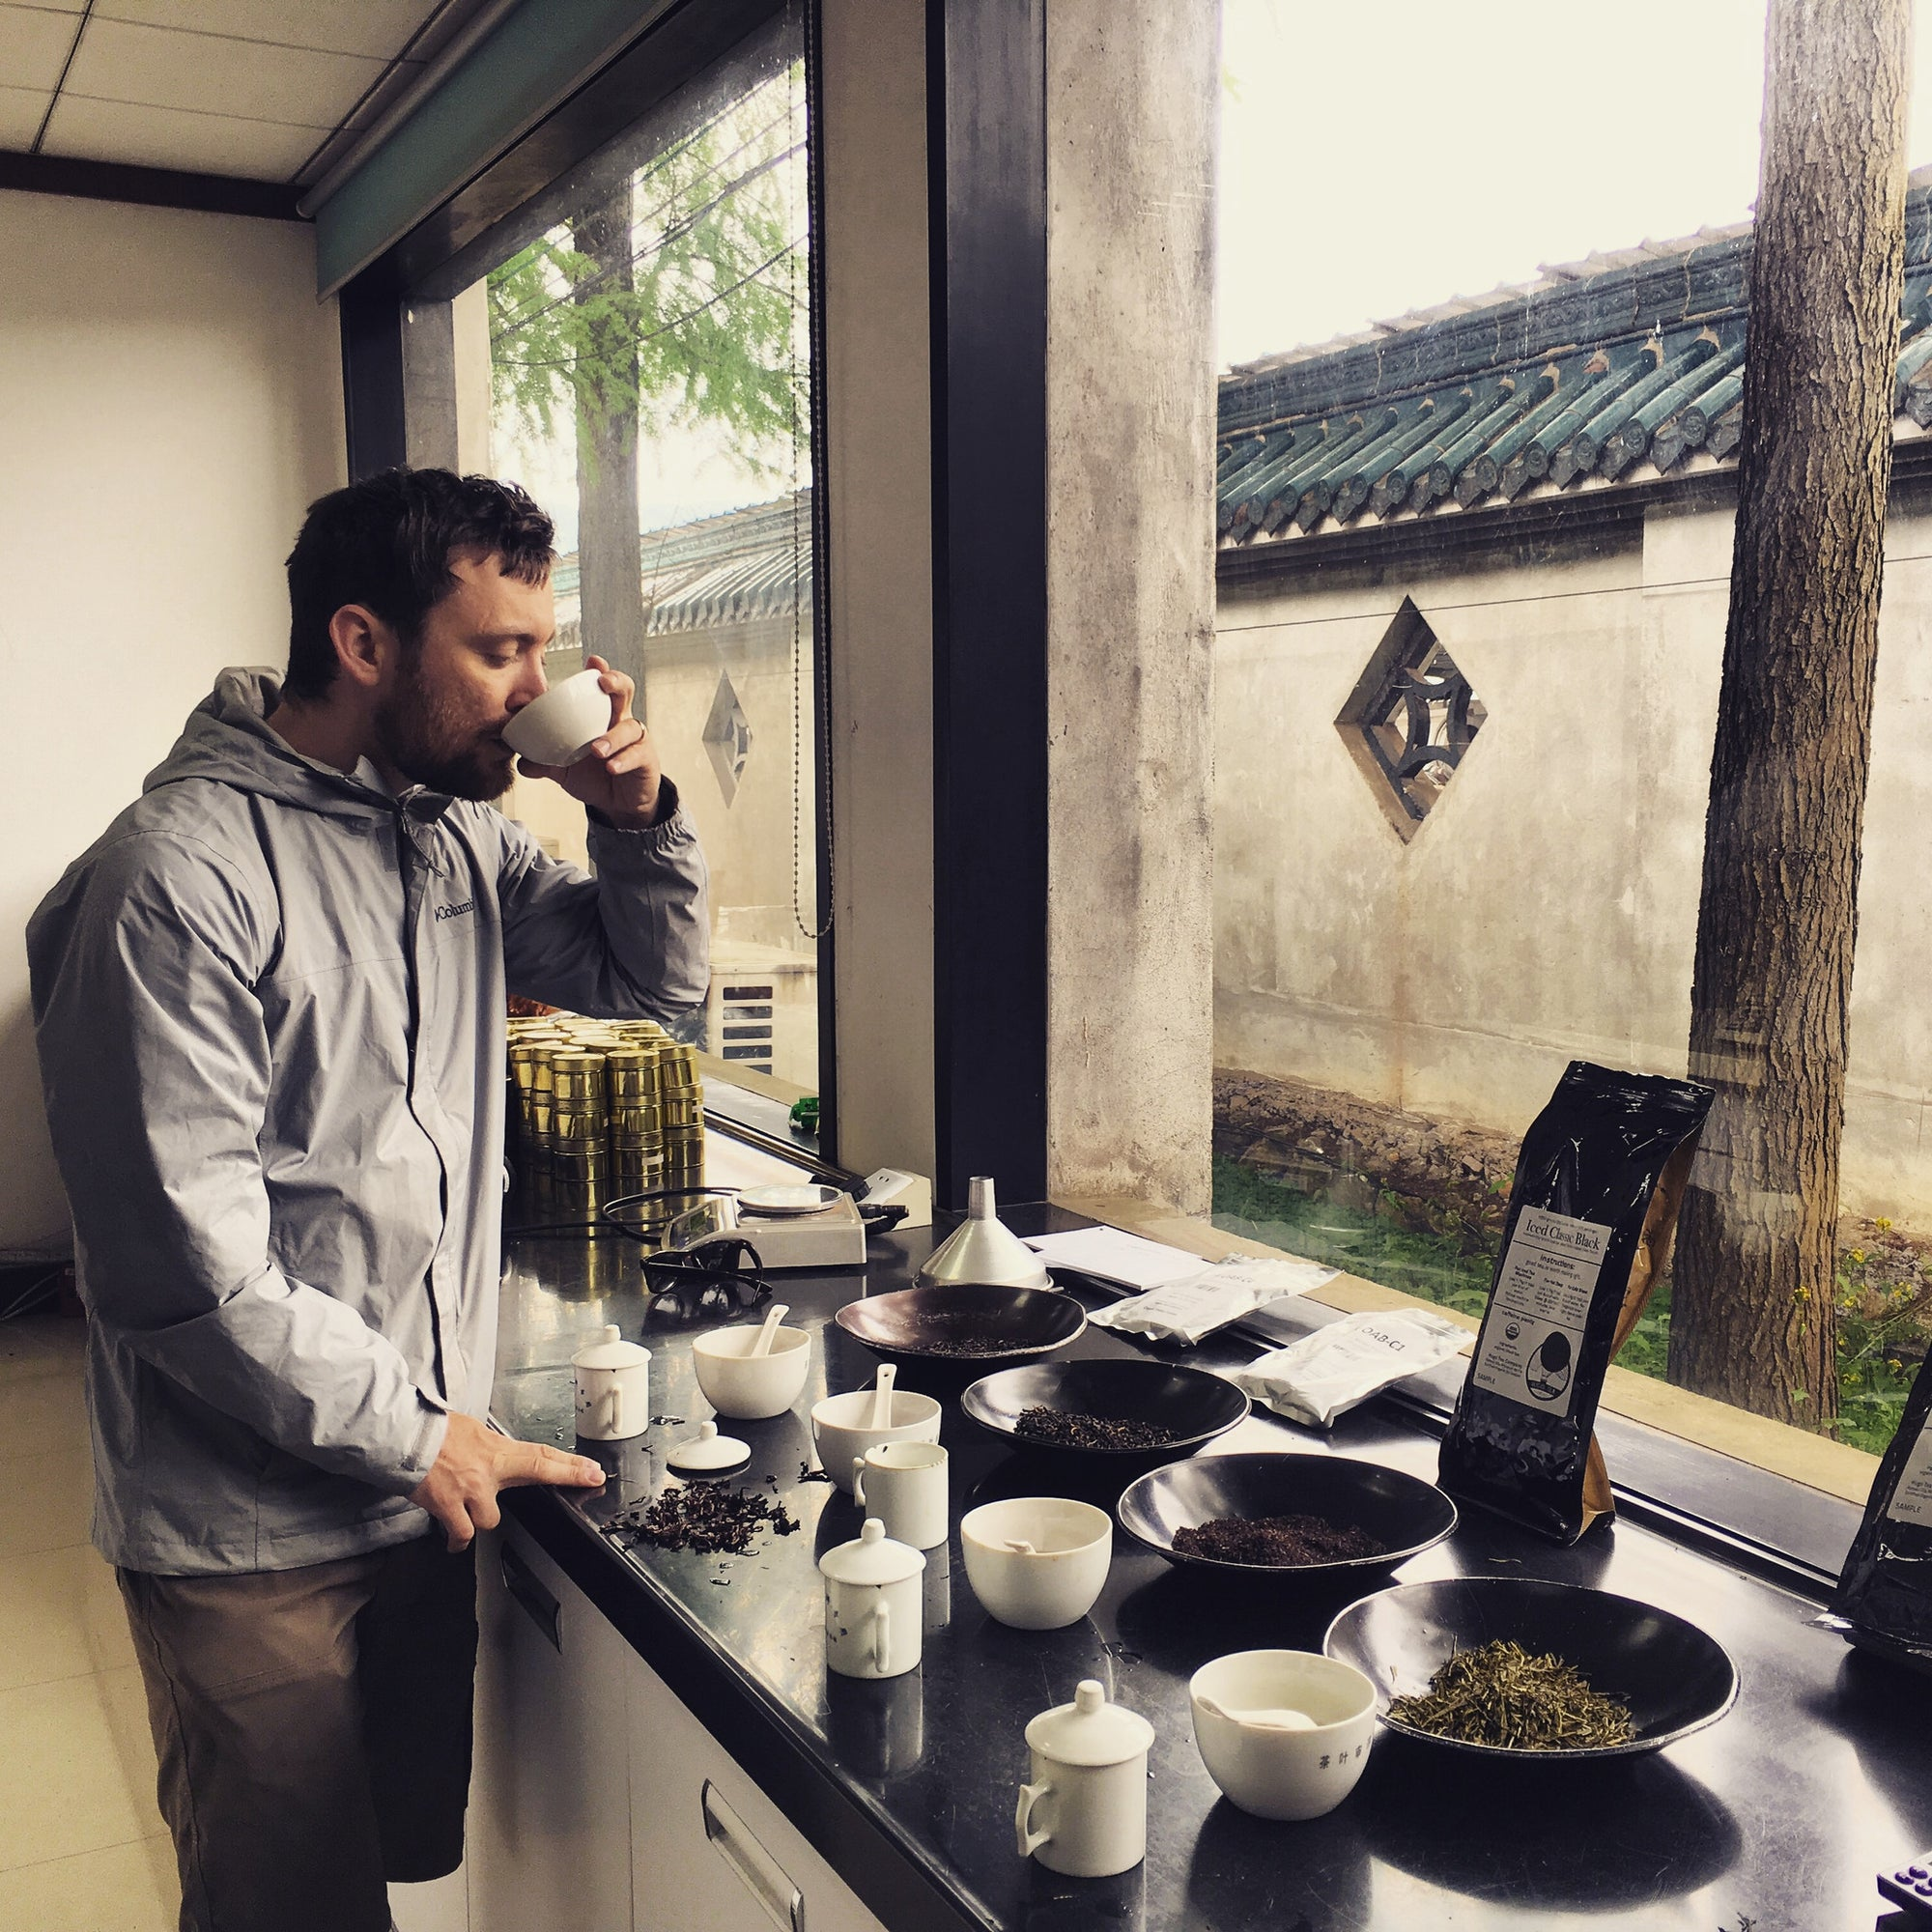 Tea cupping with a friend